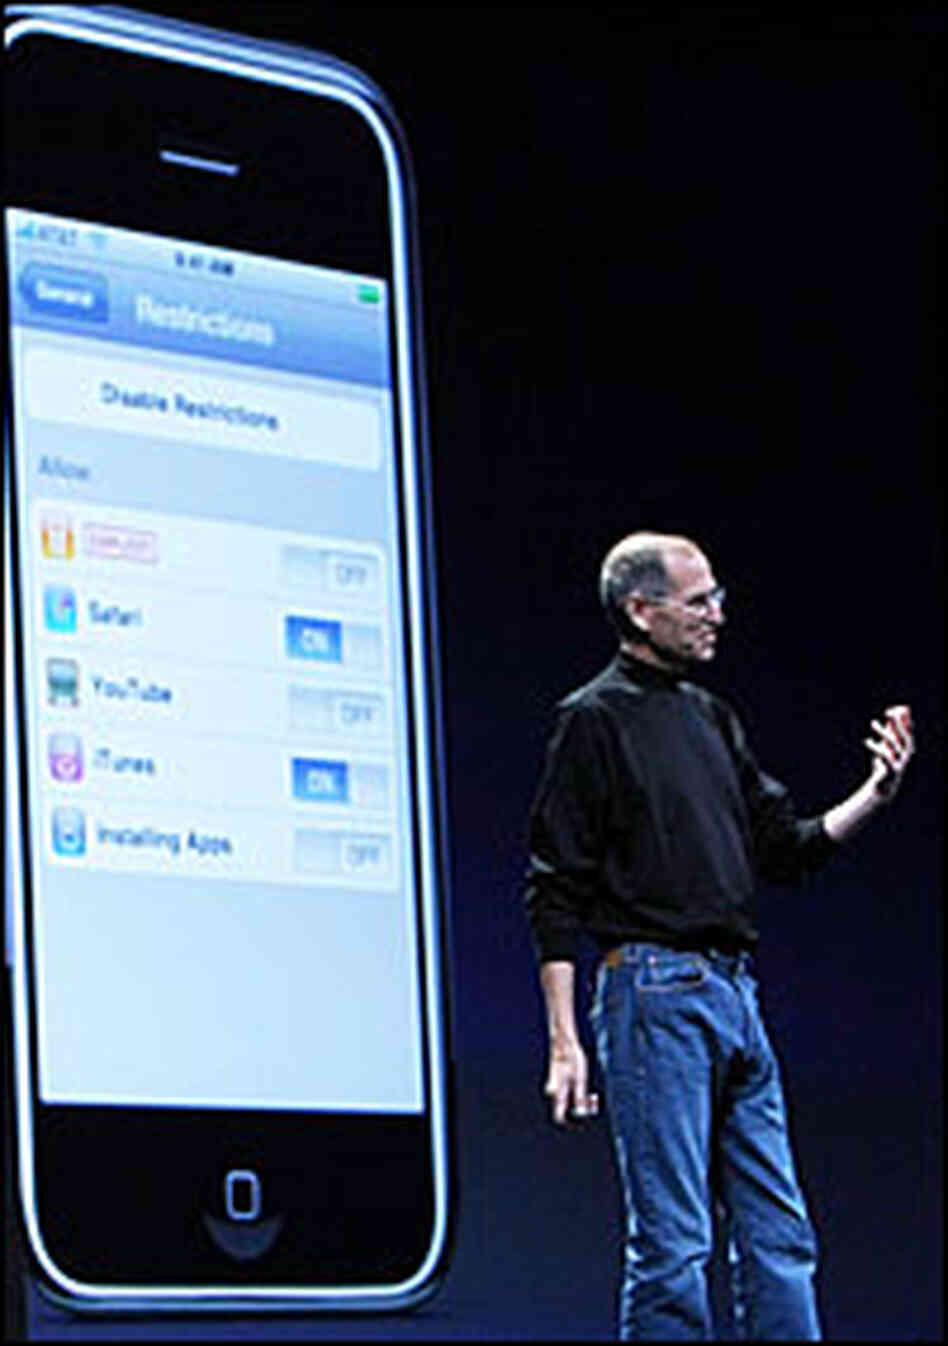 Apple CEO Steve Jobs introduces the new iPhone 3G.